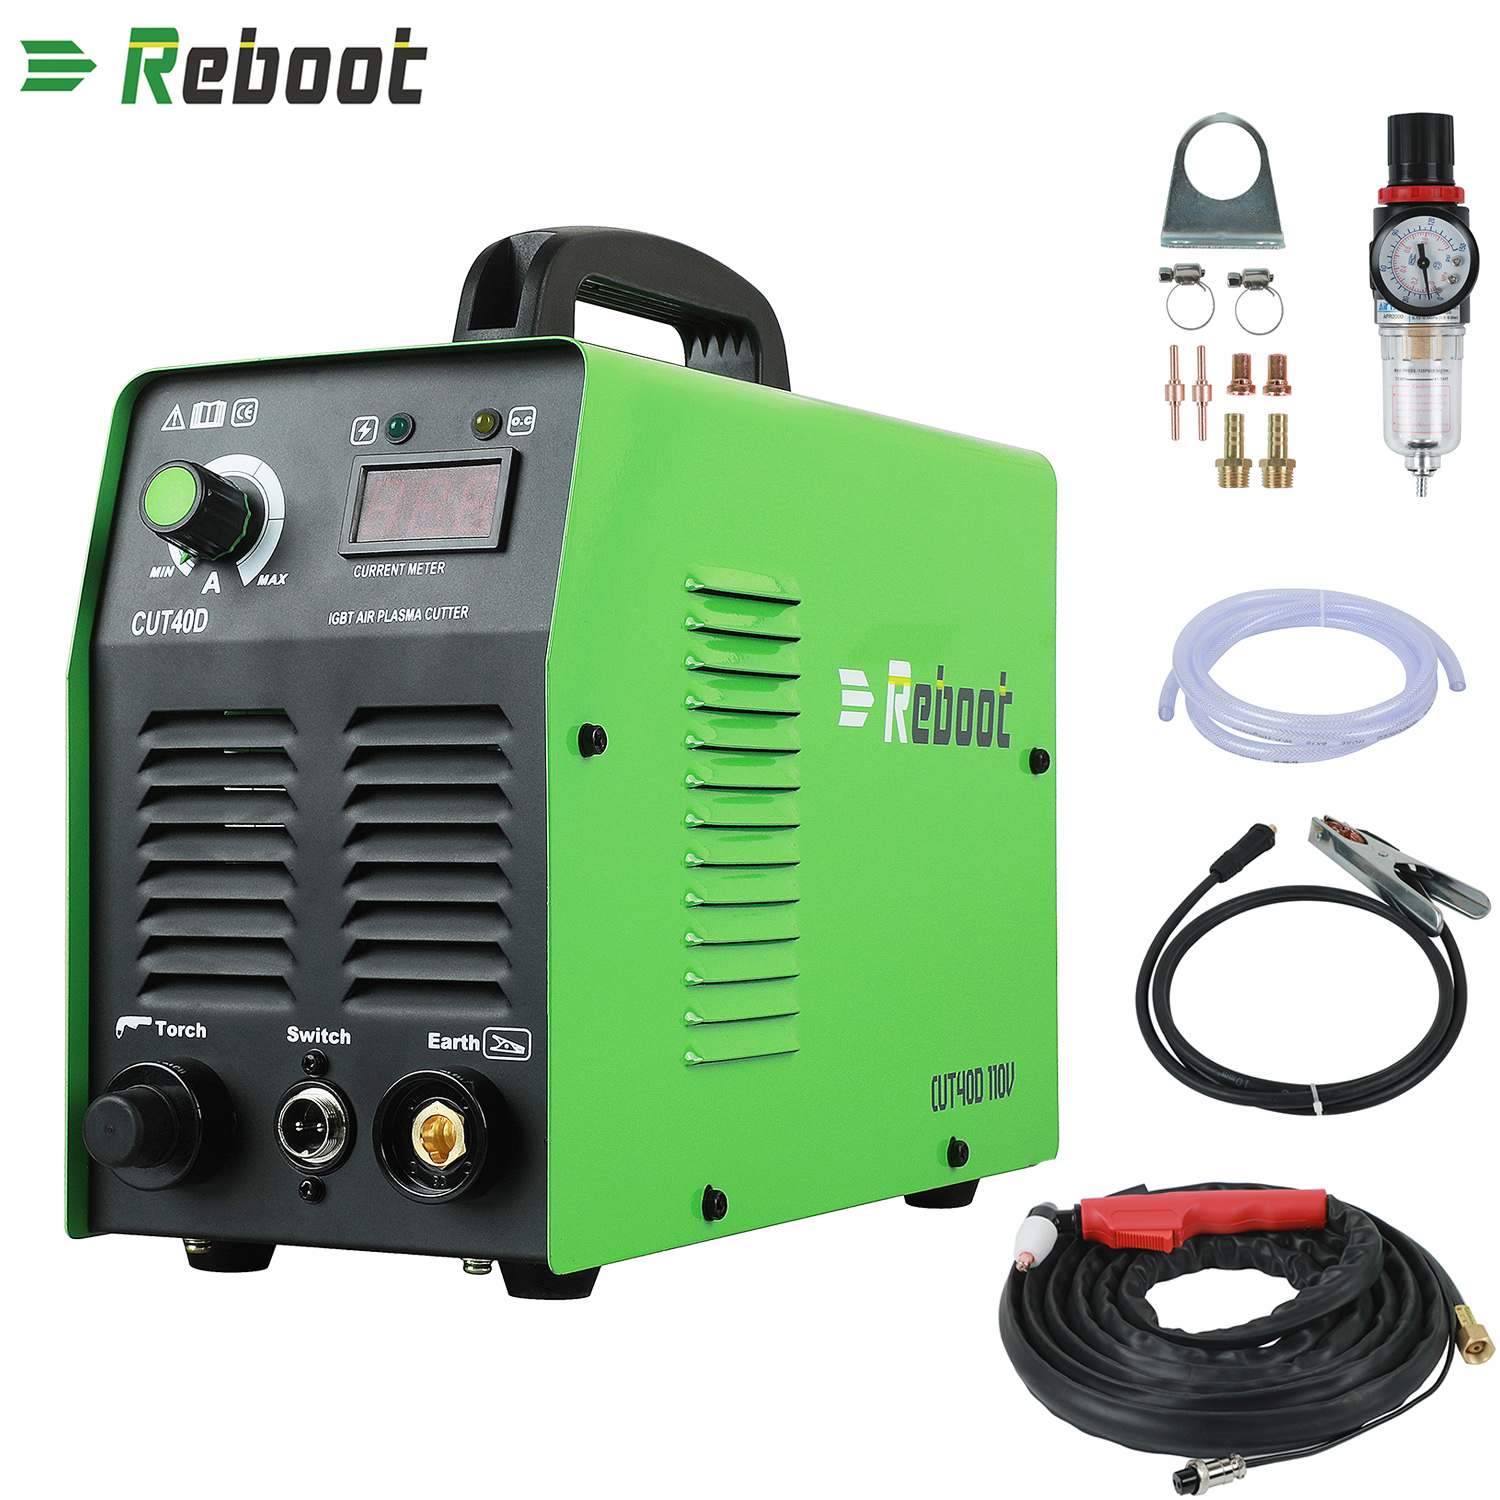 Reboot  220V/110V Air Plasma Cutter CUT 40 Plasma Welders Cutting Machine With Torch Accessories R Cut All Steel EU/US Plug